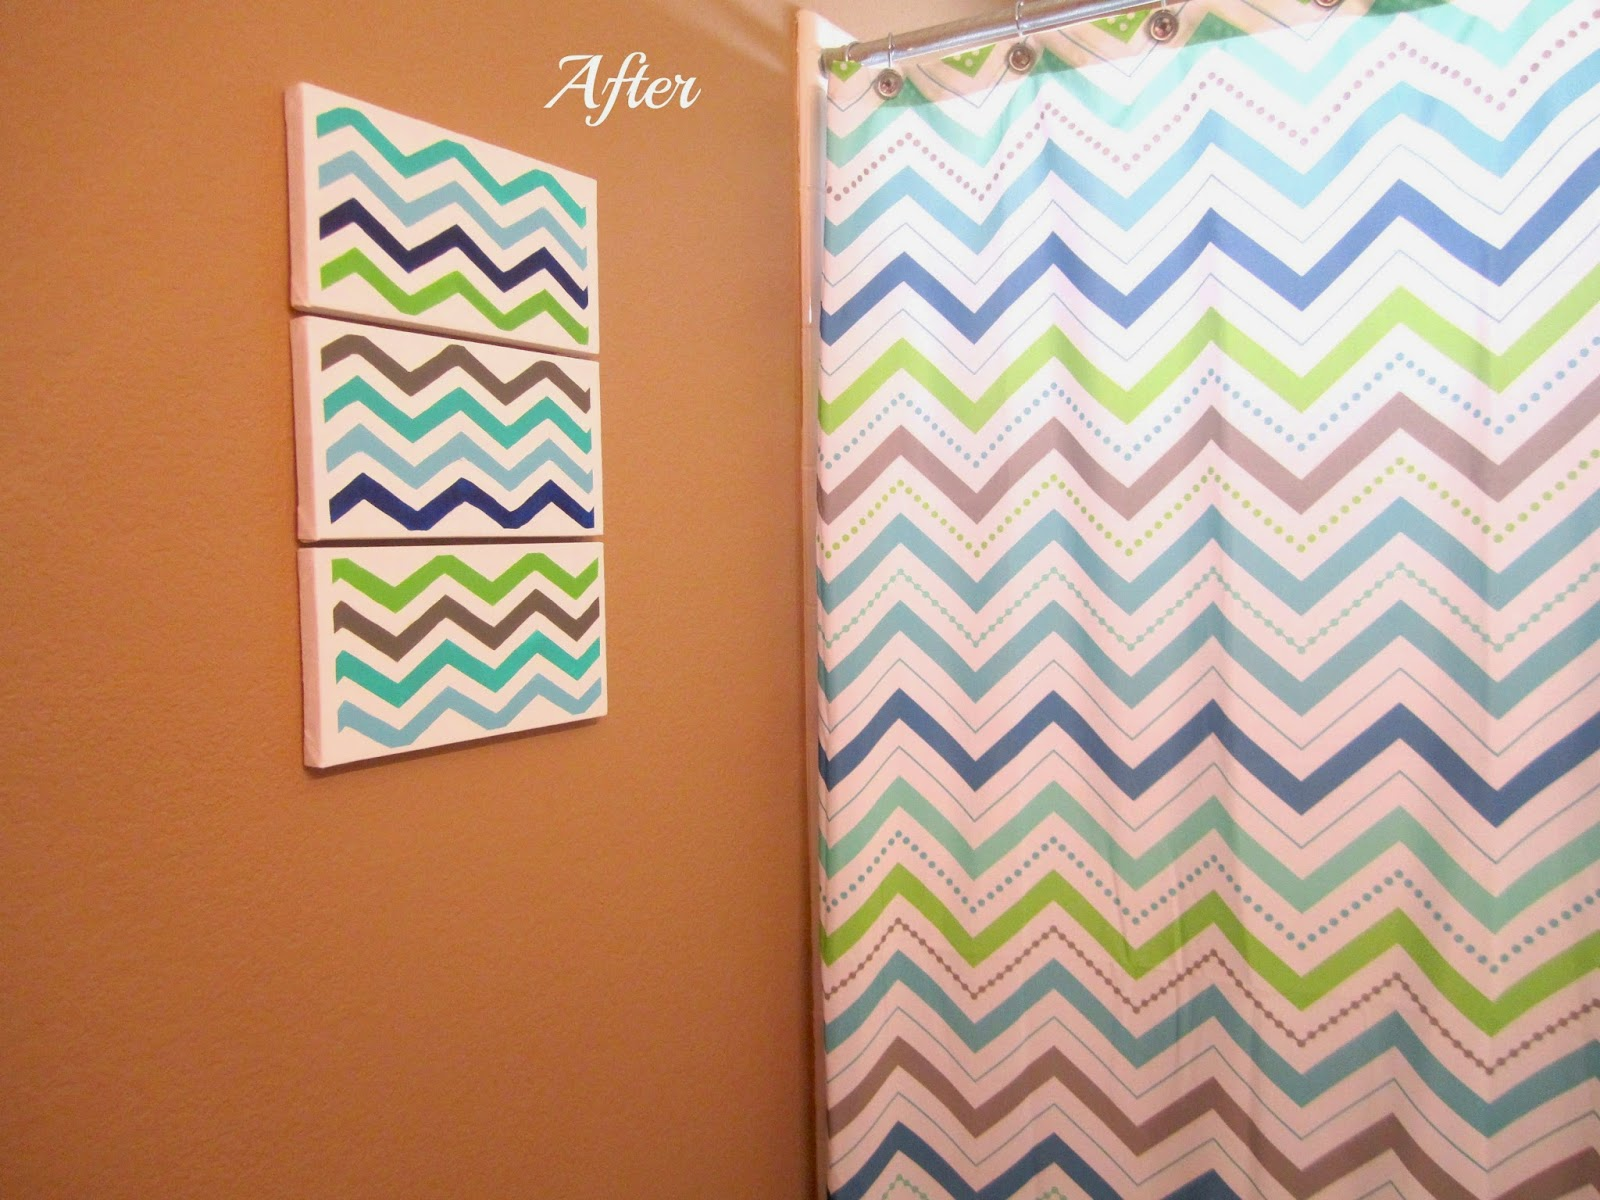 Aqua Chevron Shower Curtain - I had 3 6x12 blick studio canvases on hand and luckily i had every paint color on hand that matched the shower curtain